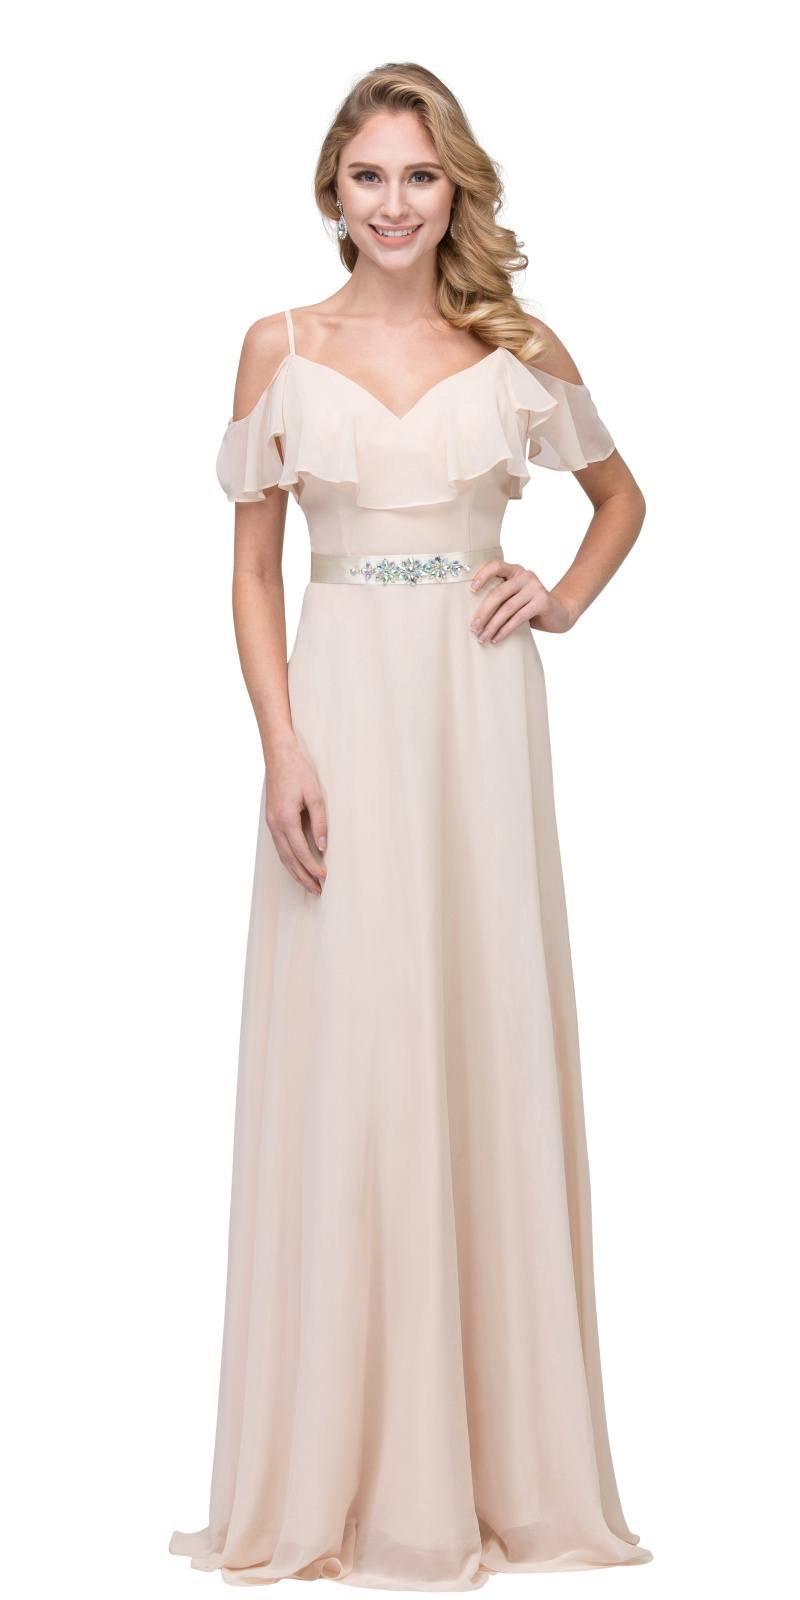 Starbox USA 17211 Champagne Ruffled Cold-Shoulder Long Formal Dress ...